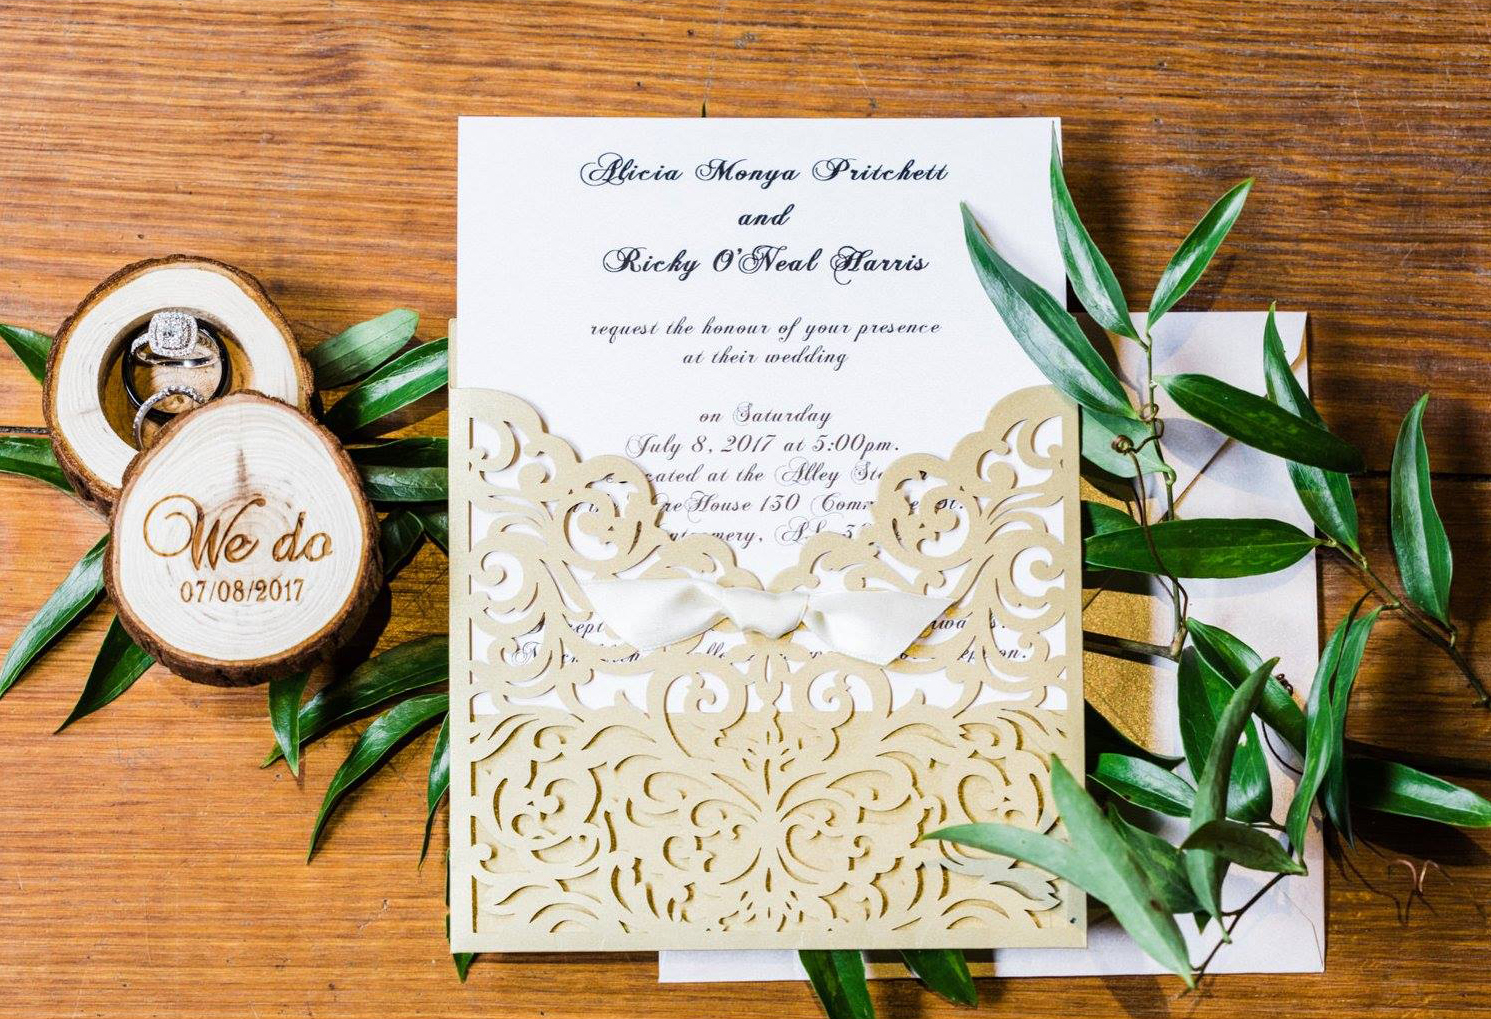 Affordable Wedding Invitations With Response Cards At Elegant Wedding  Invites